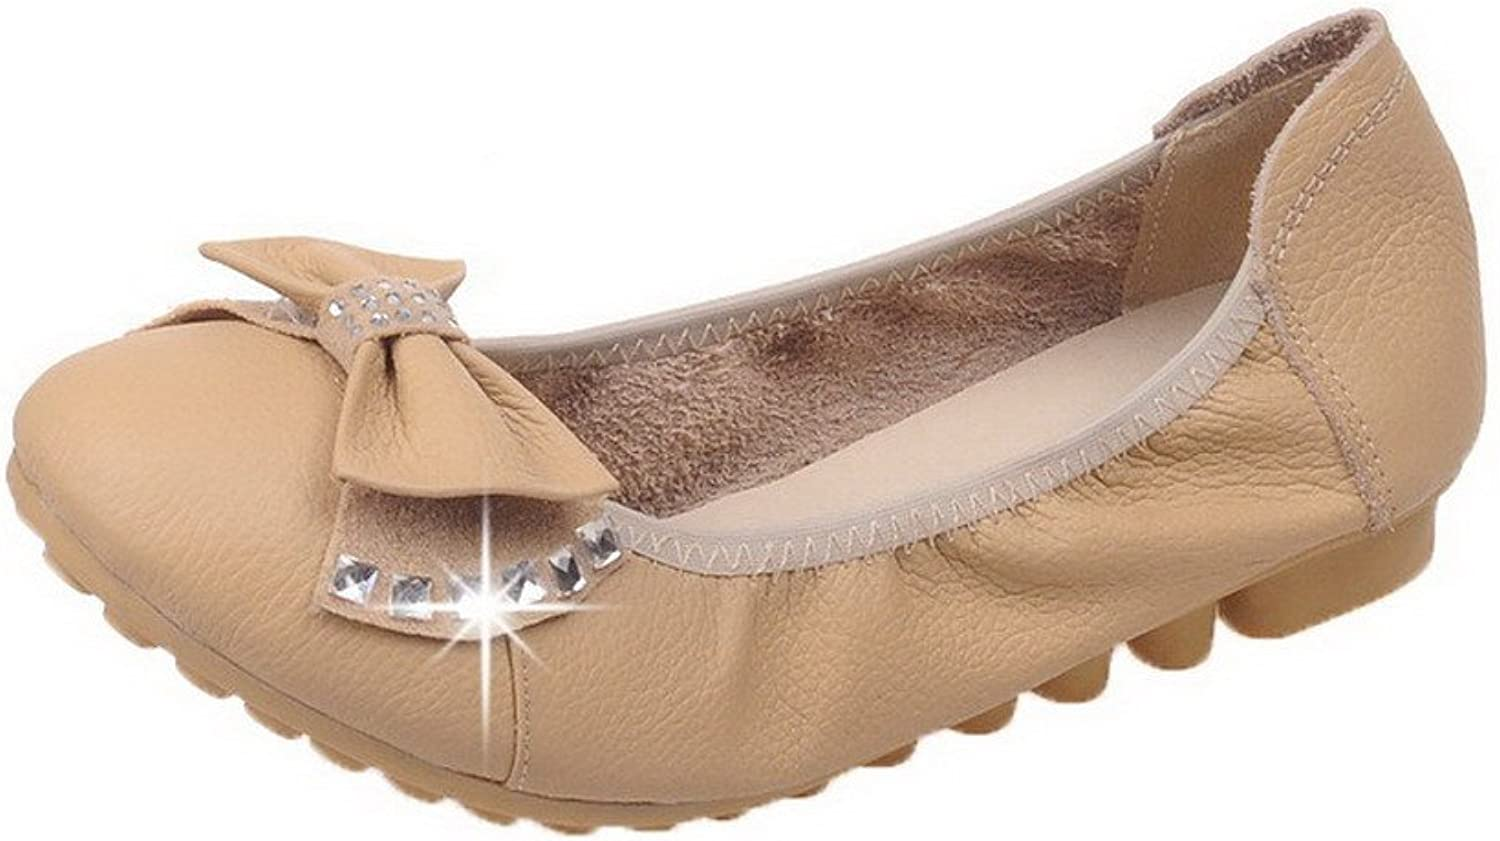 WeiPoot Women's Pull-On Low-Heels Pu Studded Round-Toe Pumps-shoes